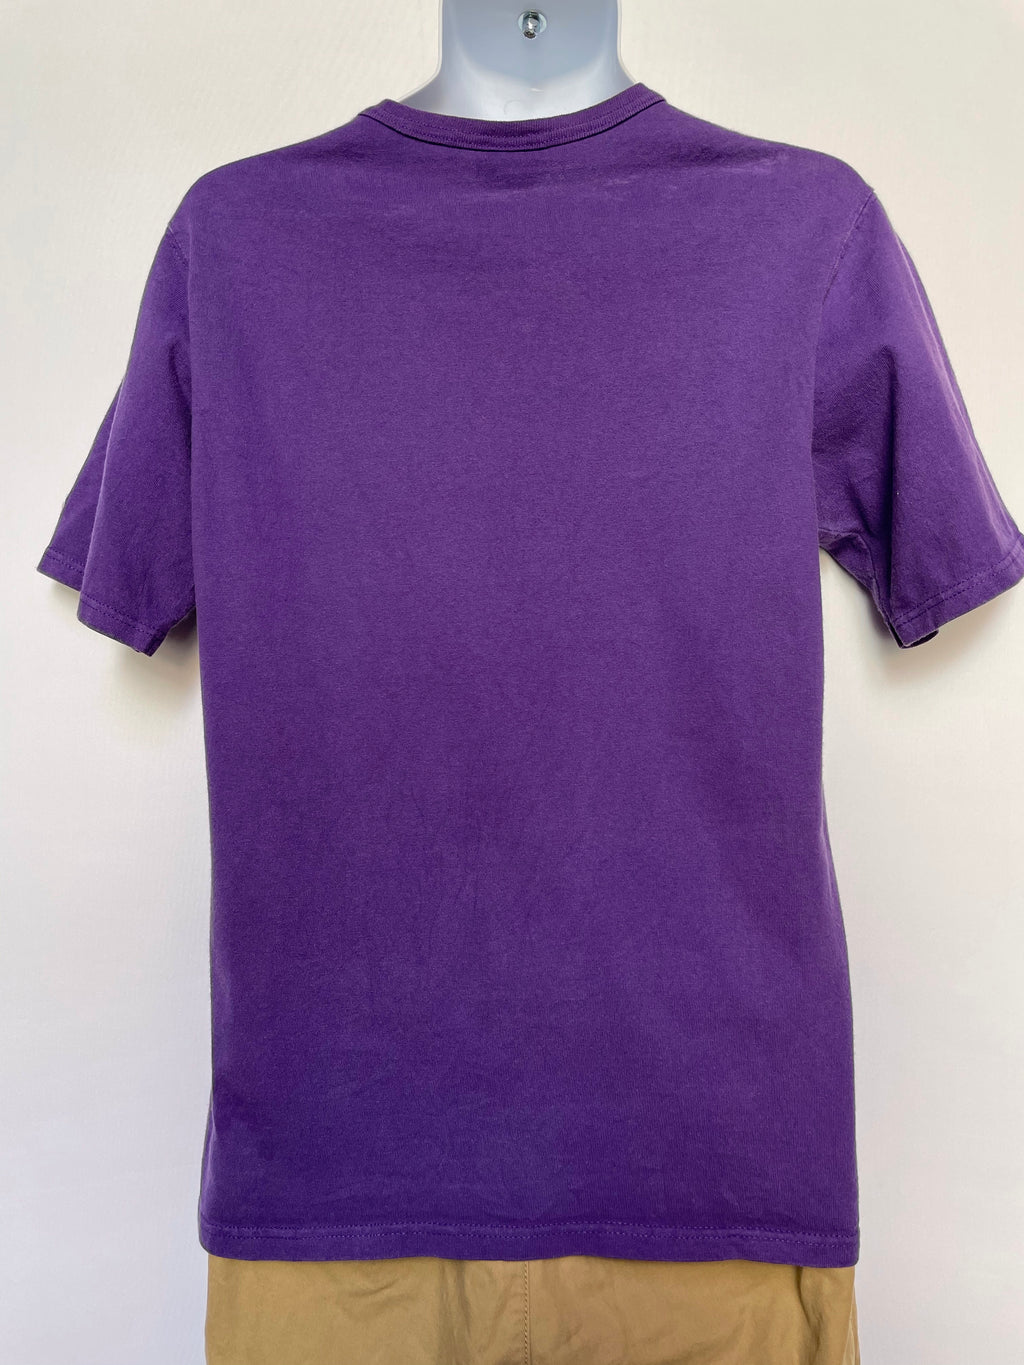 Purple Champion Tee - AS IS - minor wear